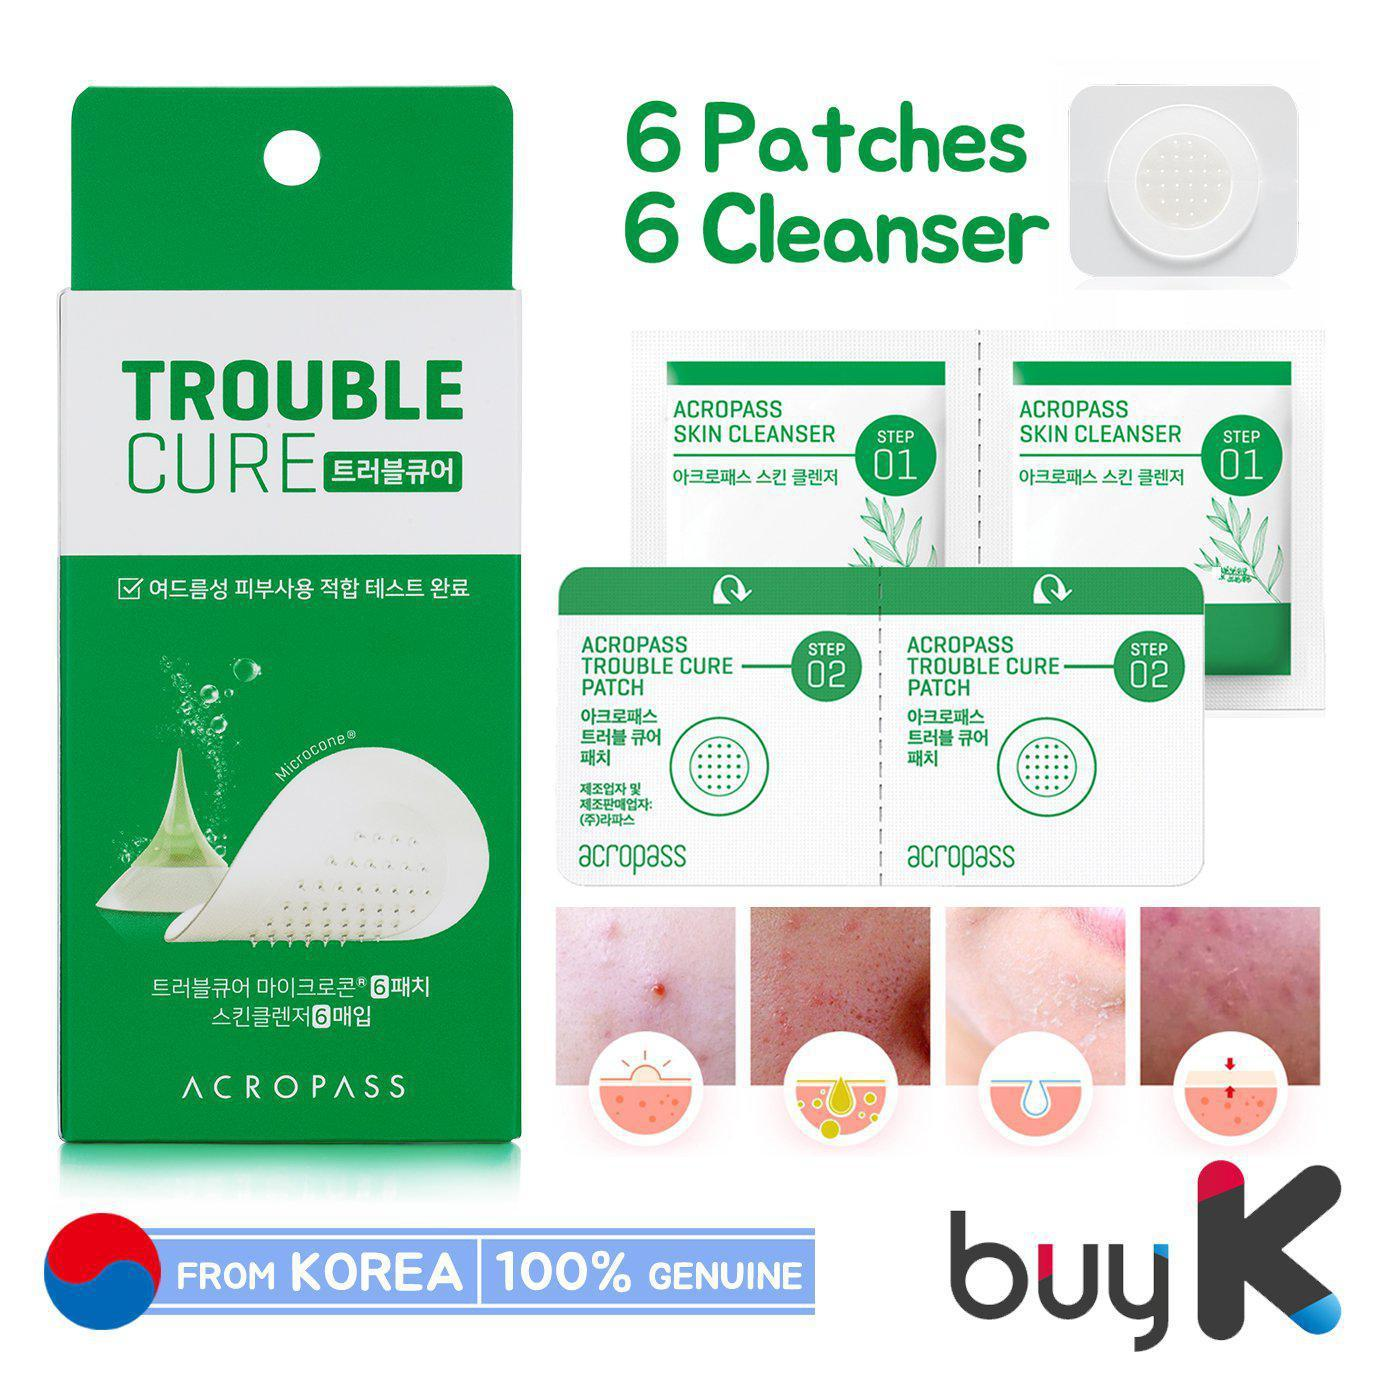 [ACROPASS] Trouble Care Microneedle Patch (6 Patches & 6 Cleanser)